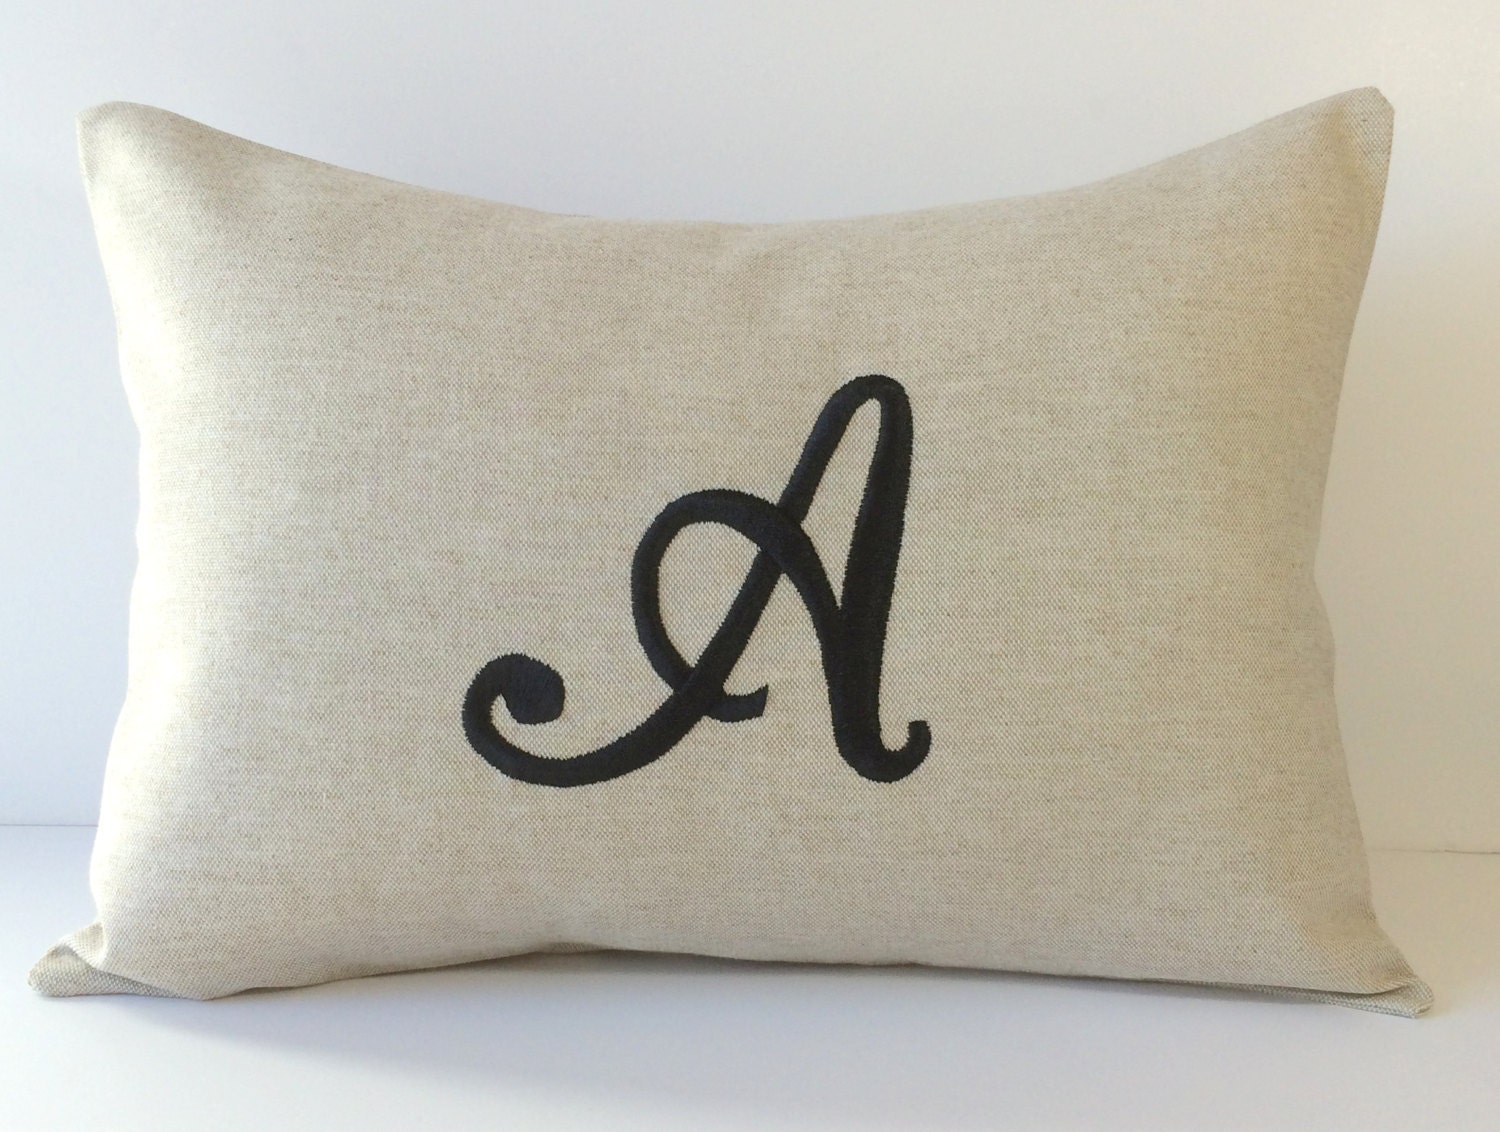 Decorative Monogram Pillow : Monogram Decorative Pillow Cover 12 X 16. Neutral Home Decor.